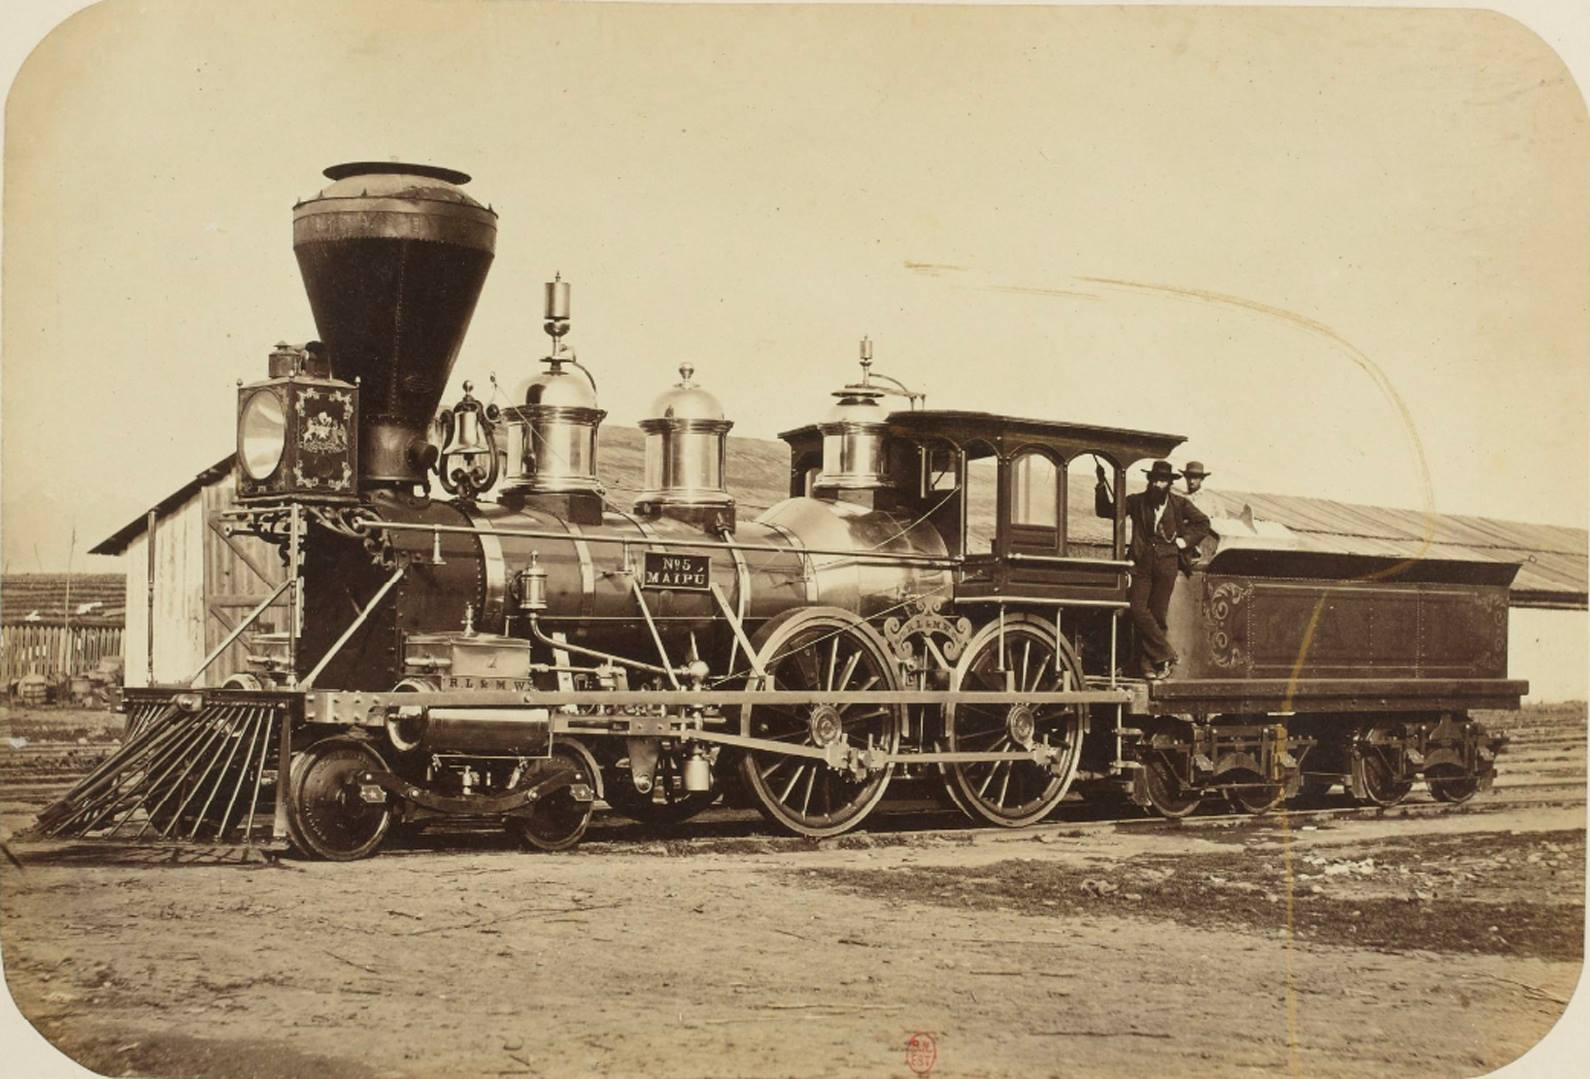 Enterreno - Fotos históricas de chile - fotos antiguas de Chile - La Locomotora Maipú en Santiago, 1864